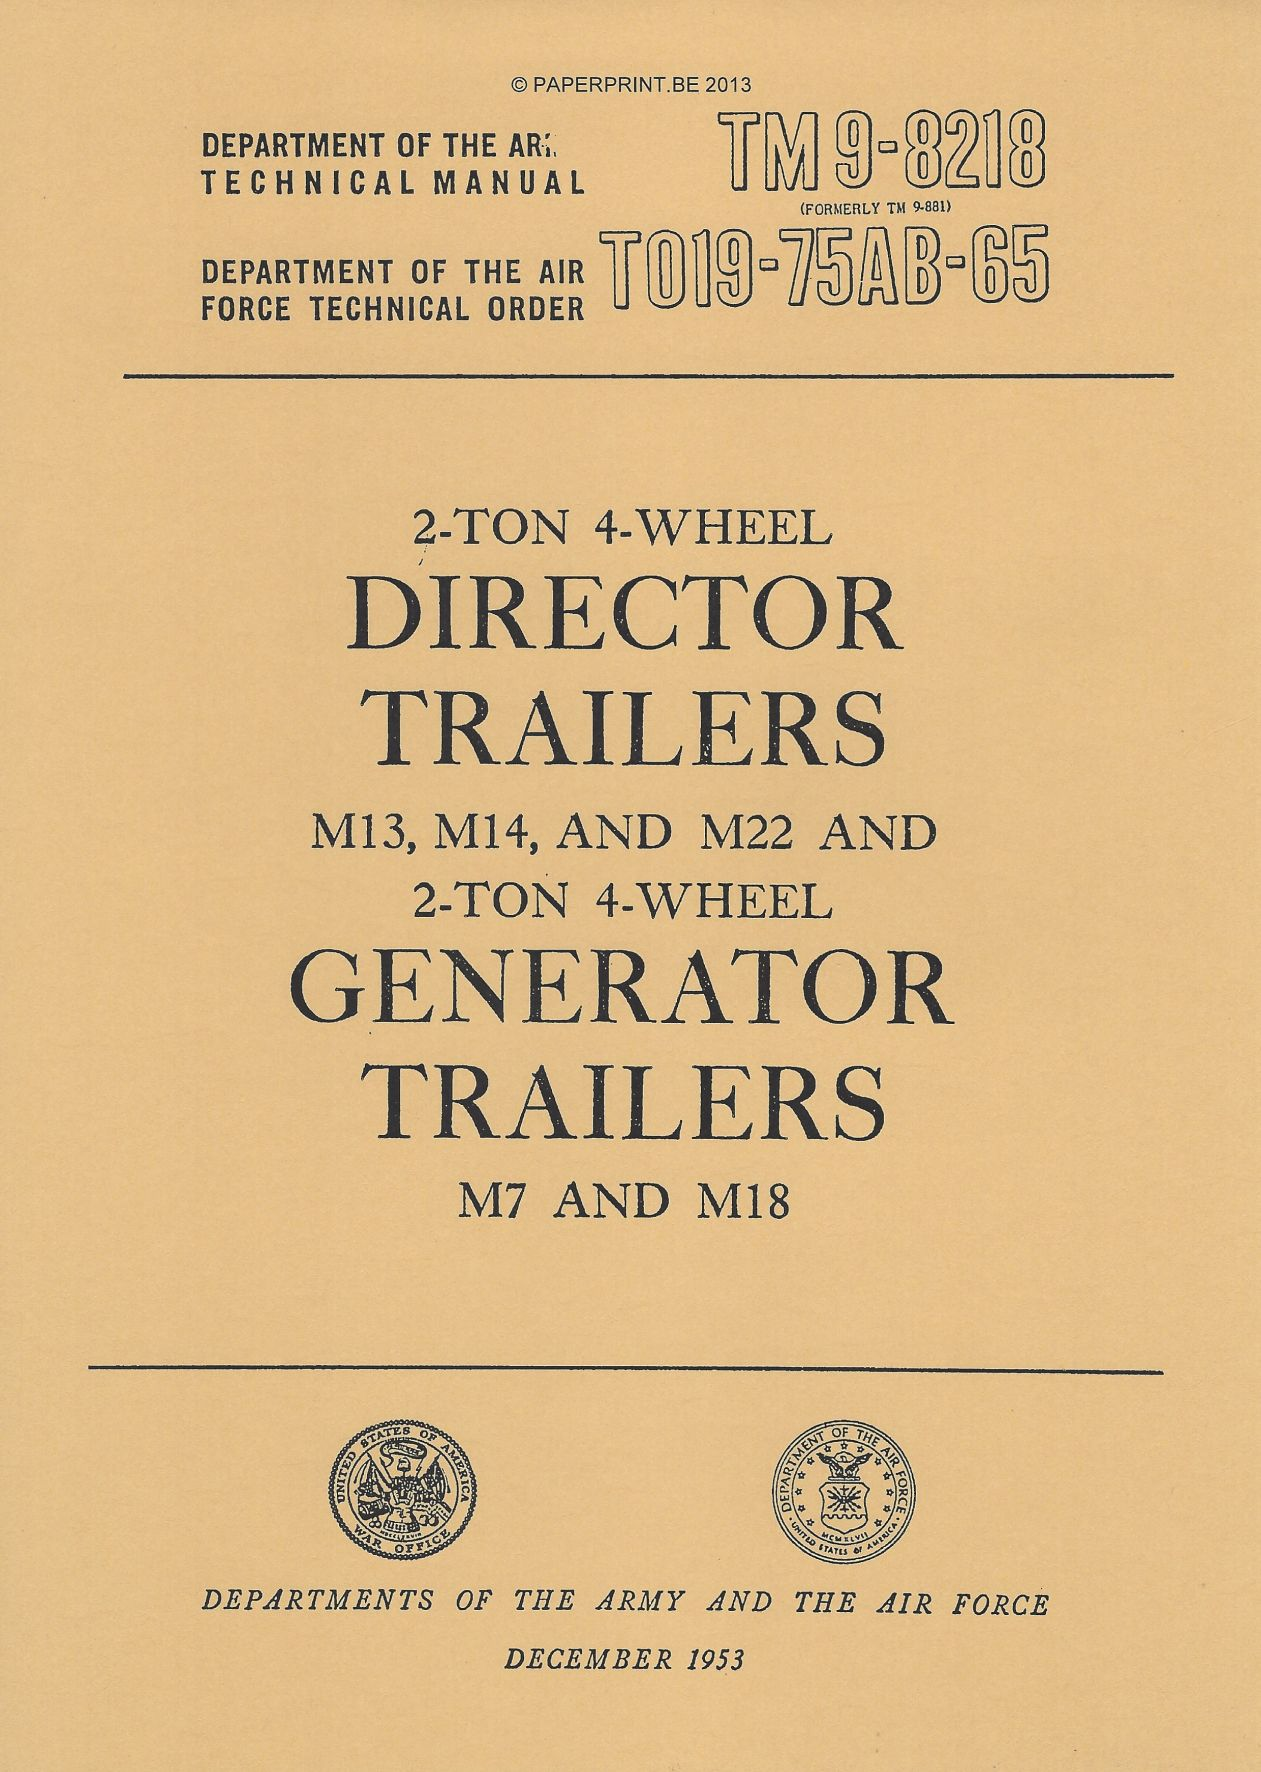 TM 9-8218 US 2-TON 4-WHEEL DIRECTOR TRAILERS M13, M14 AND M22 AND 2-TON 4-WHEEL GENERATOR  TRAILERS M7 AND M18